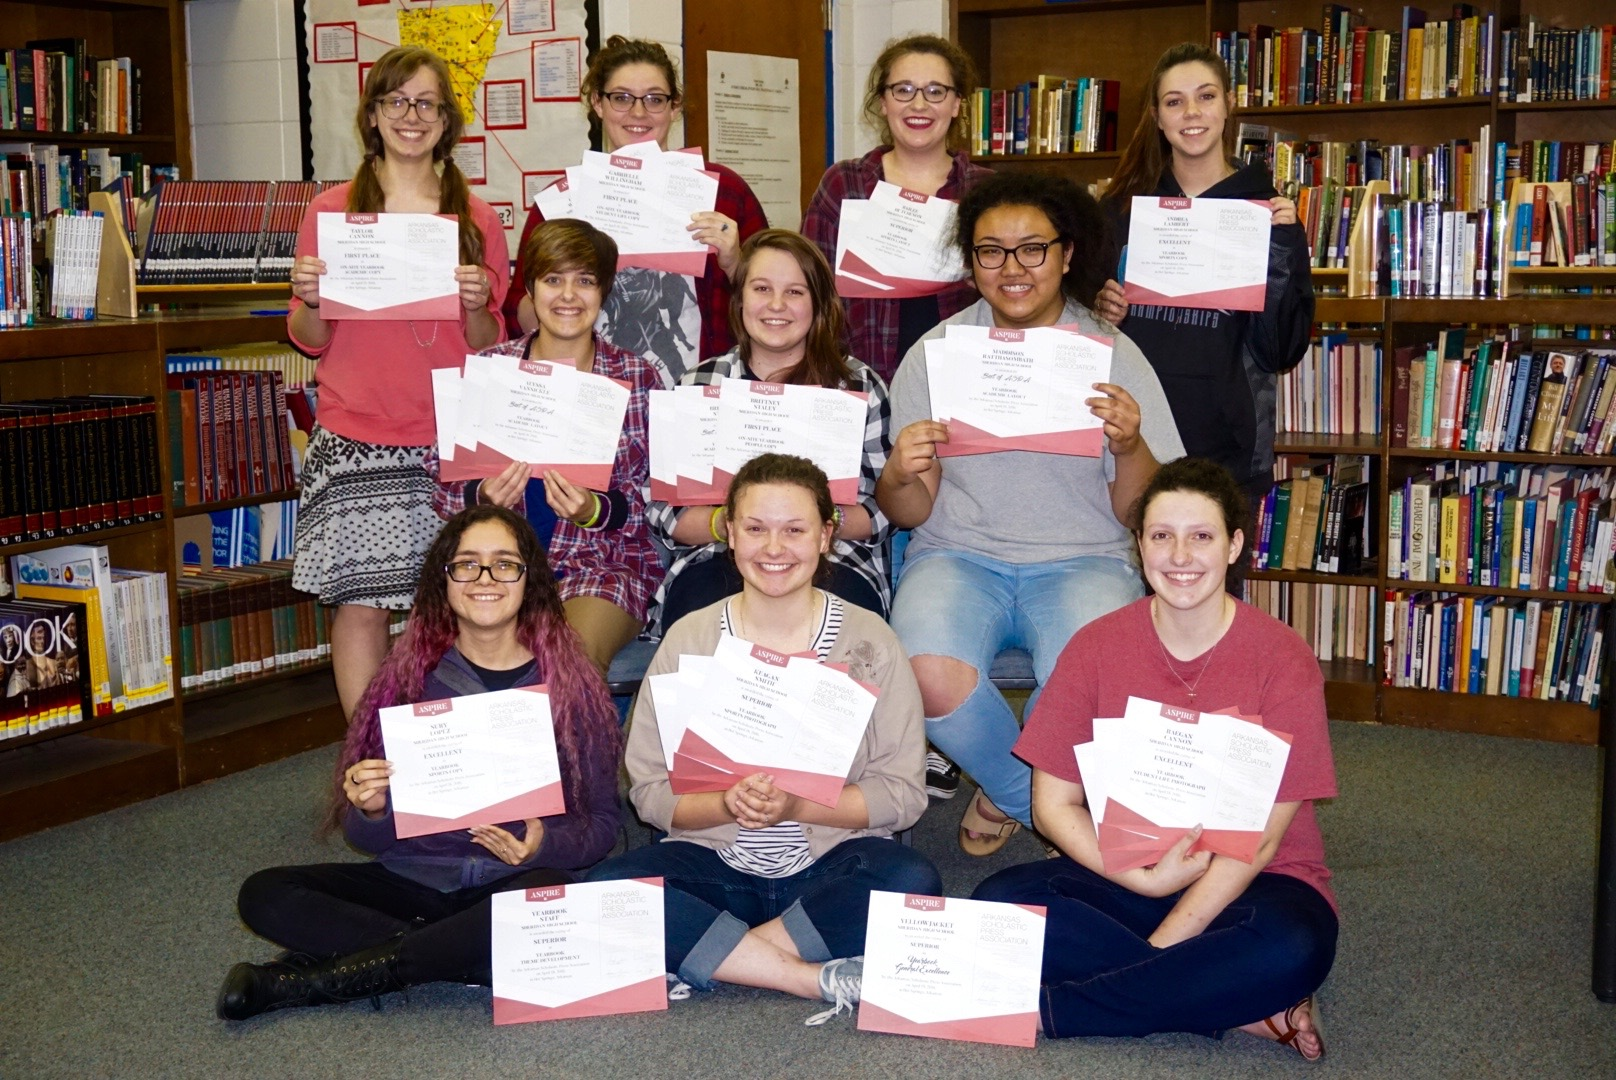 SHS Yearbook Students Win an Impressive 16 Awards at State Conference